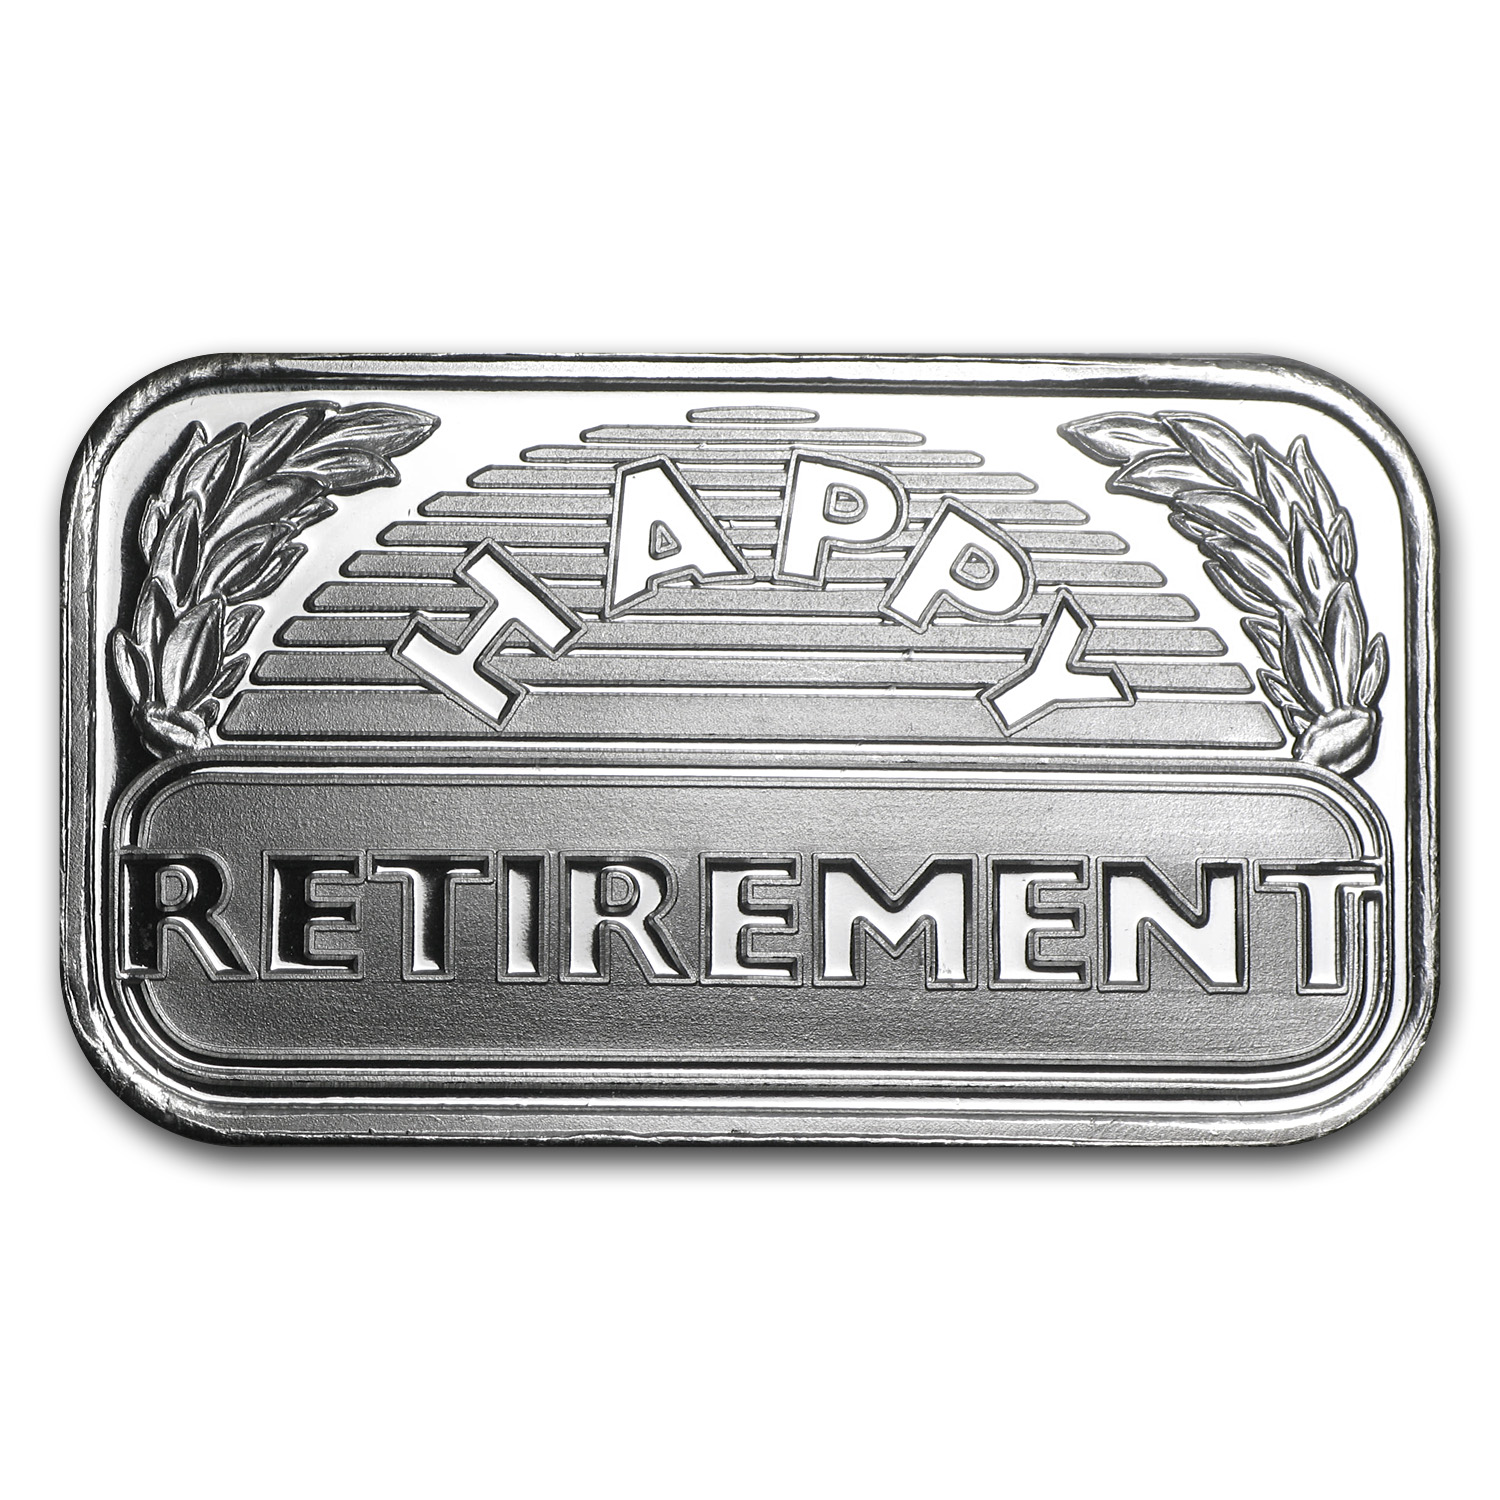 1 oz Silver Bars - 2014 Happy Retirement (w/Box & Capsule)